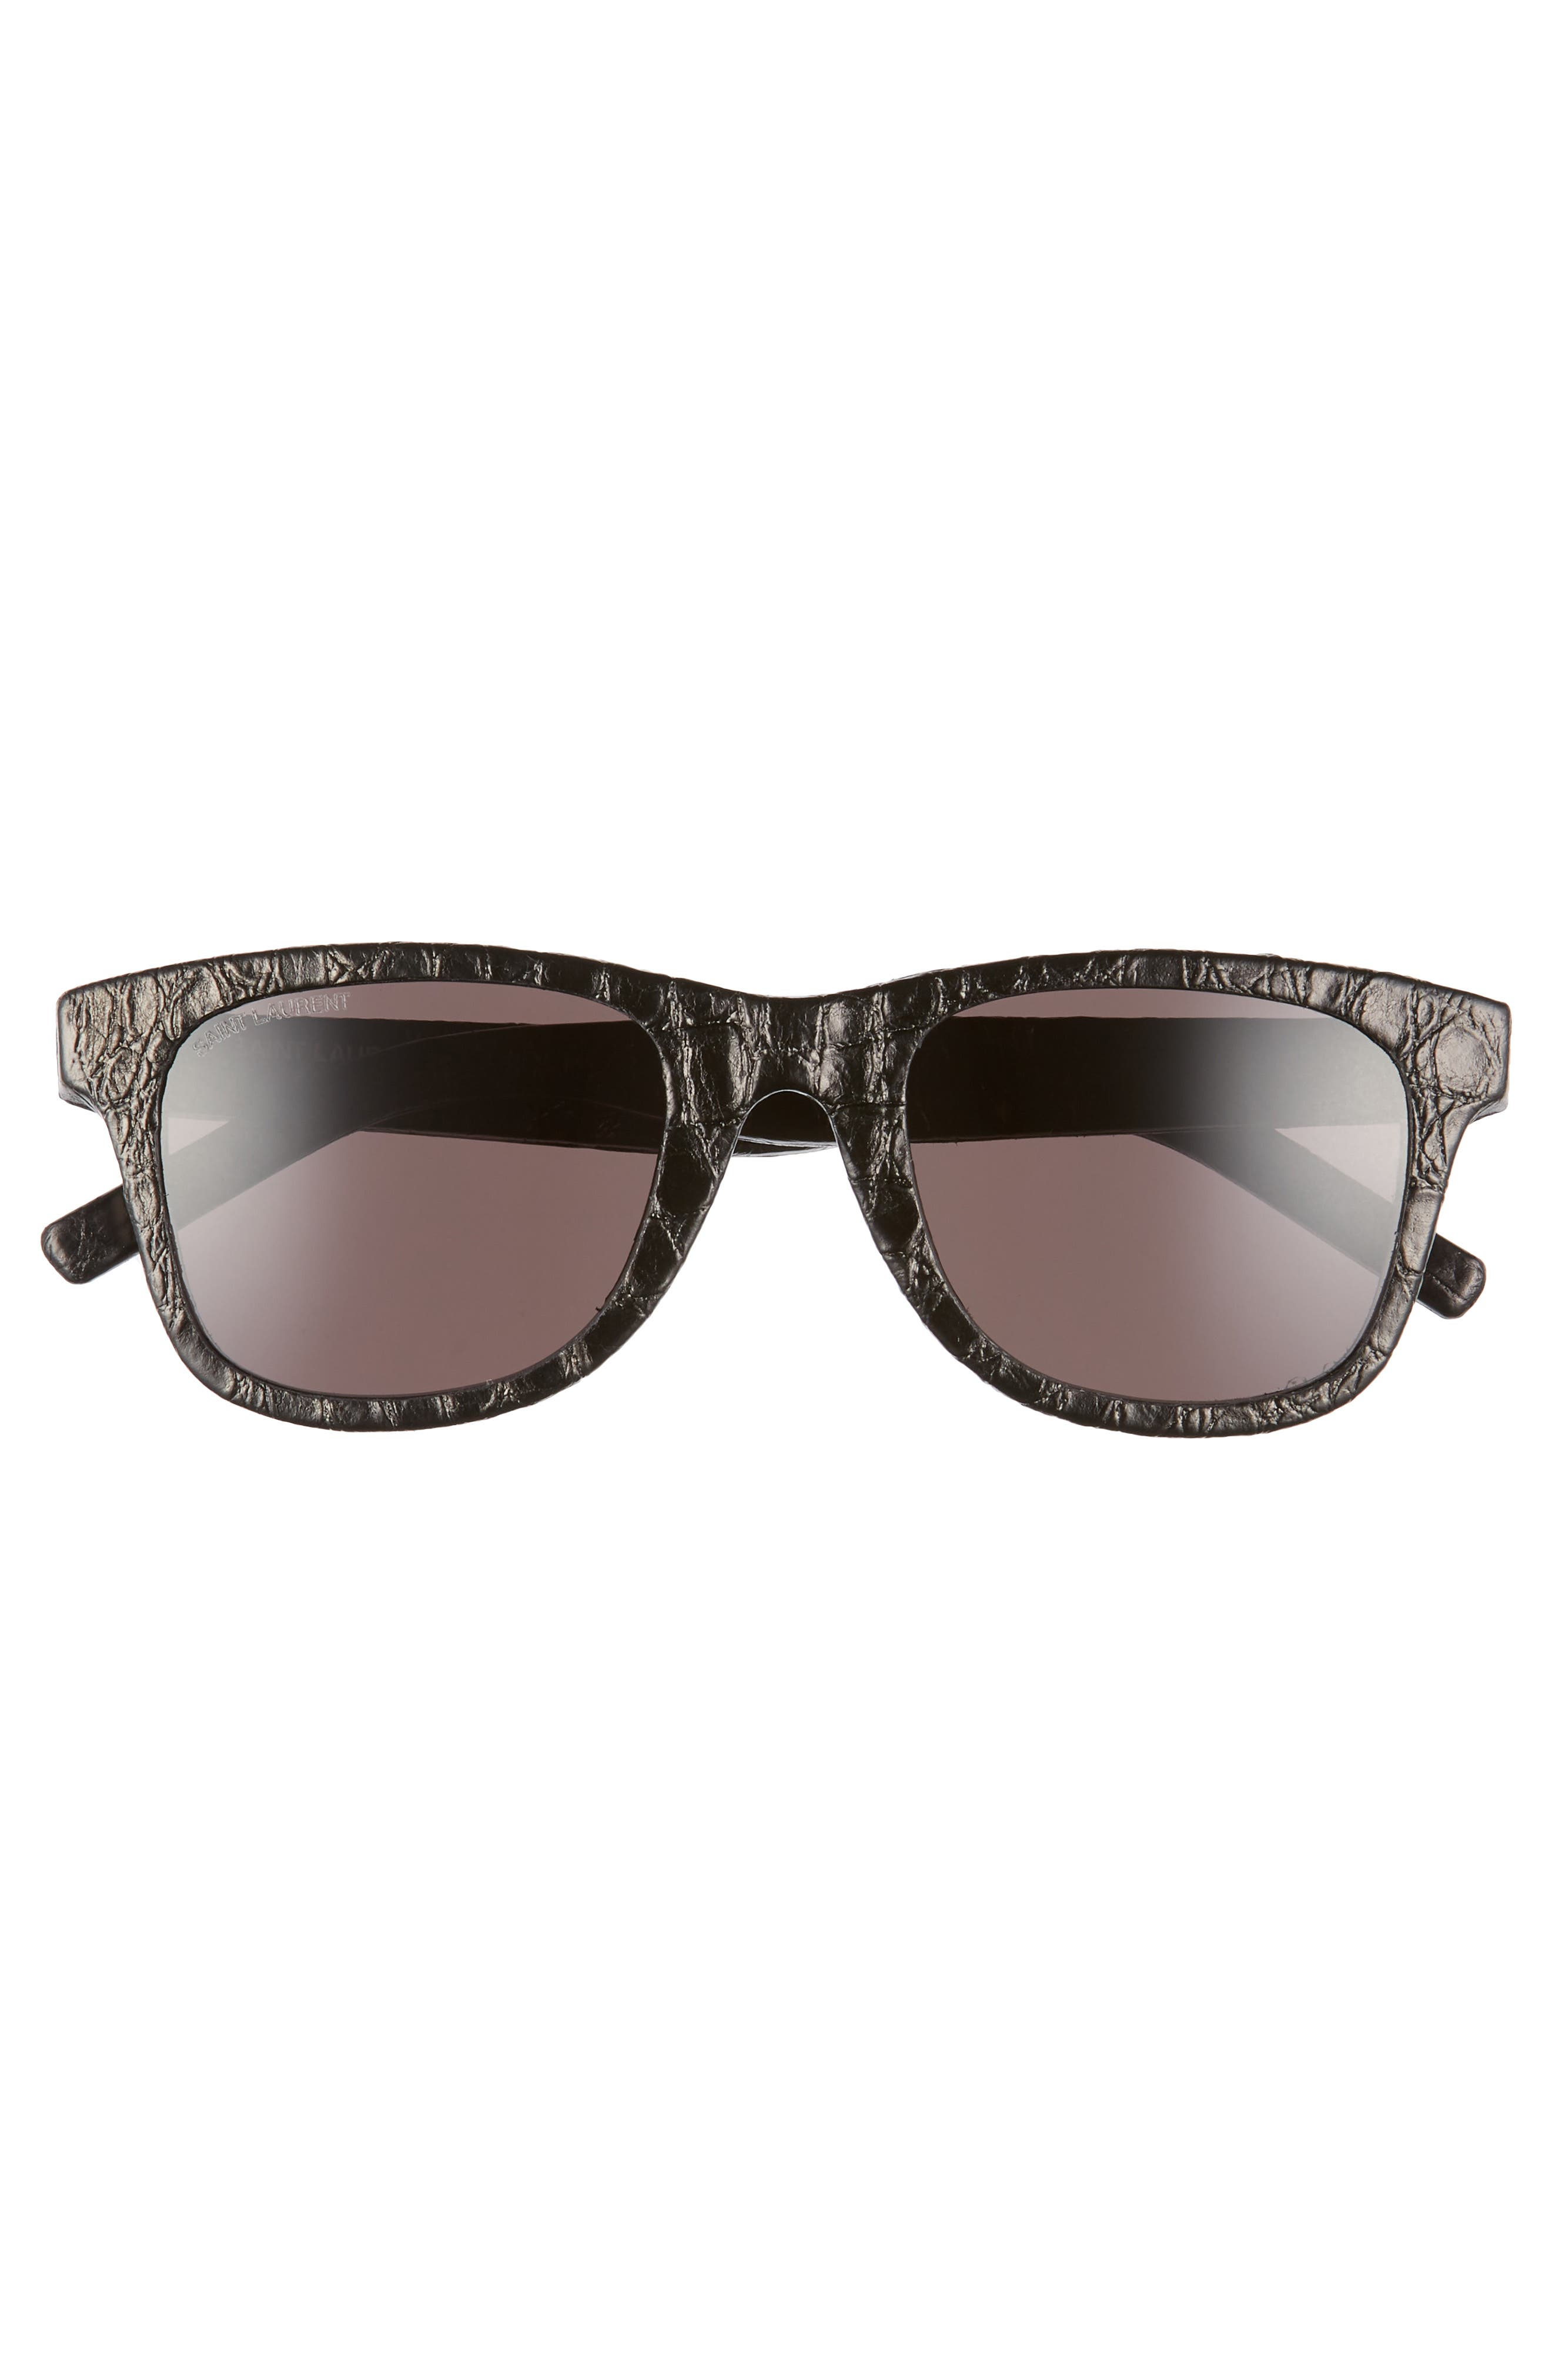 50mm Leather Wrapped Flat Top Sunglasses,                             Alternate thumbnail 3, color,                             BLACK CROCO/ GREY